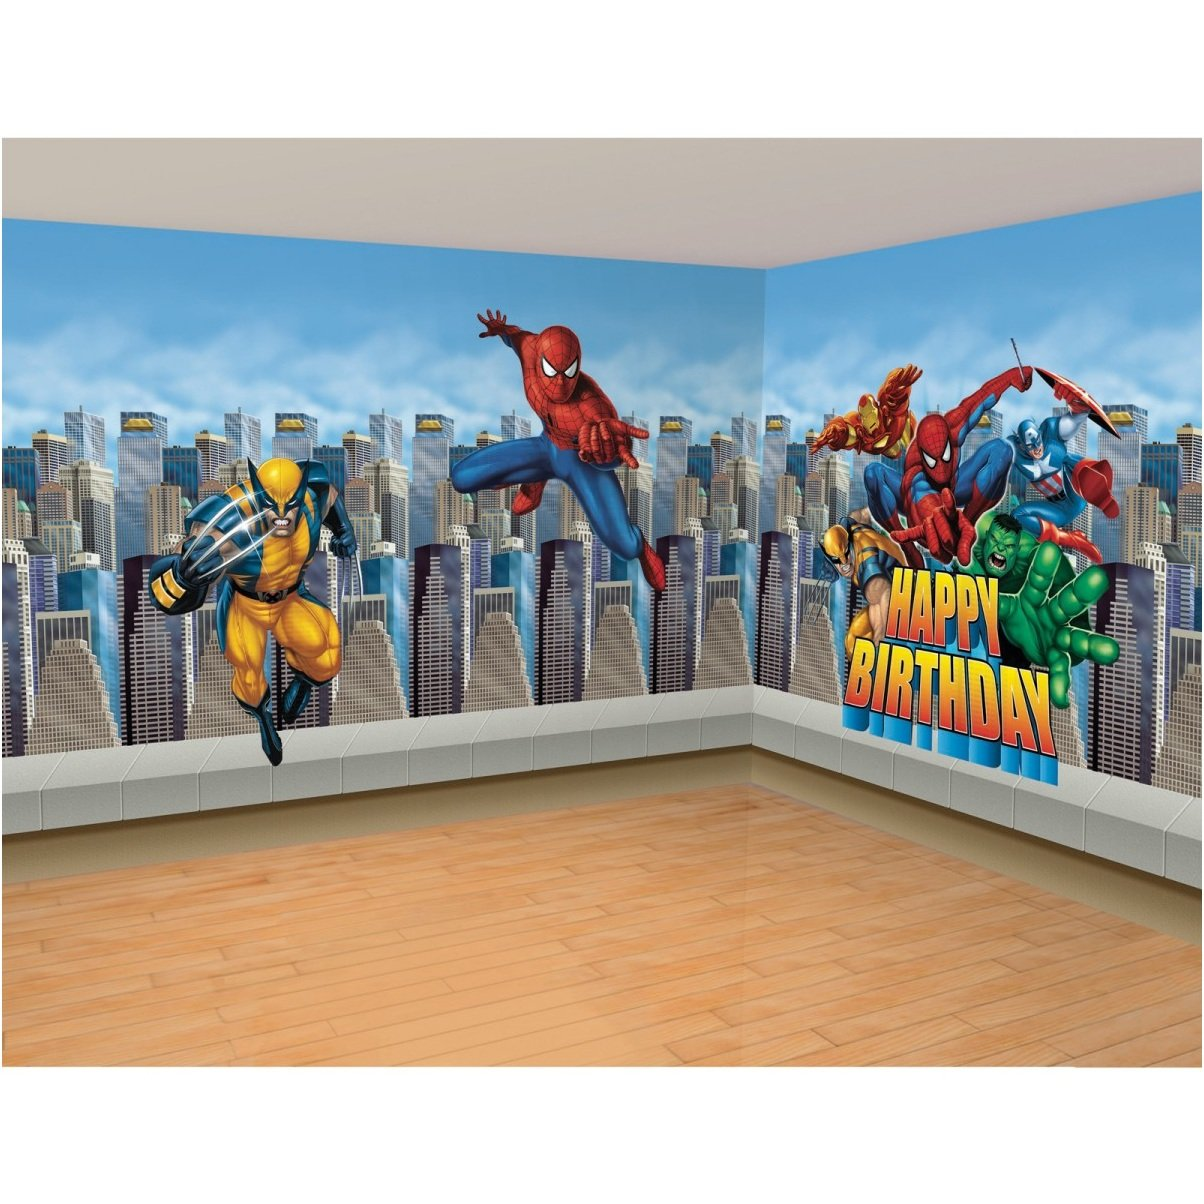 50+] Marvel Wallpaper for Boy Room on WallpaperSafari